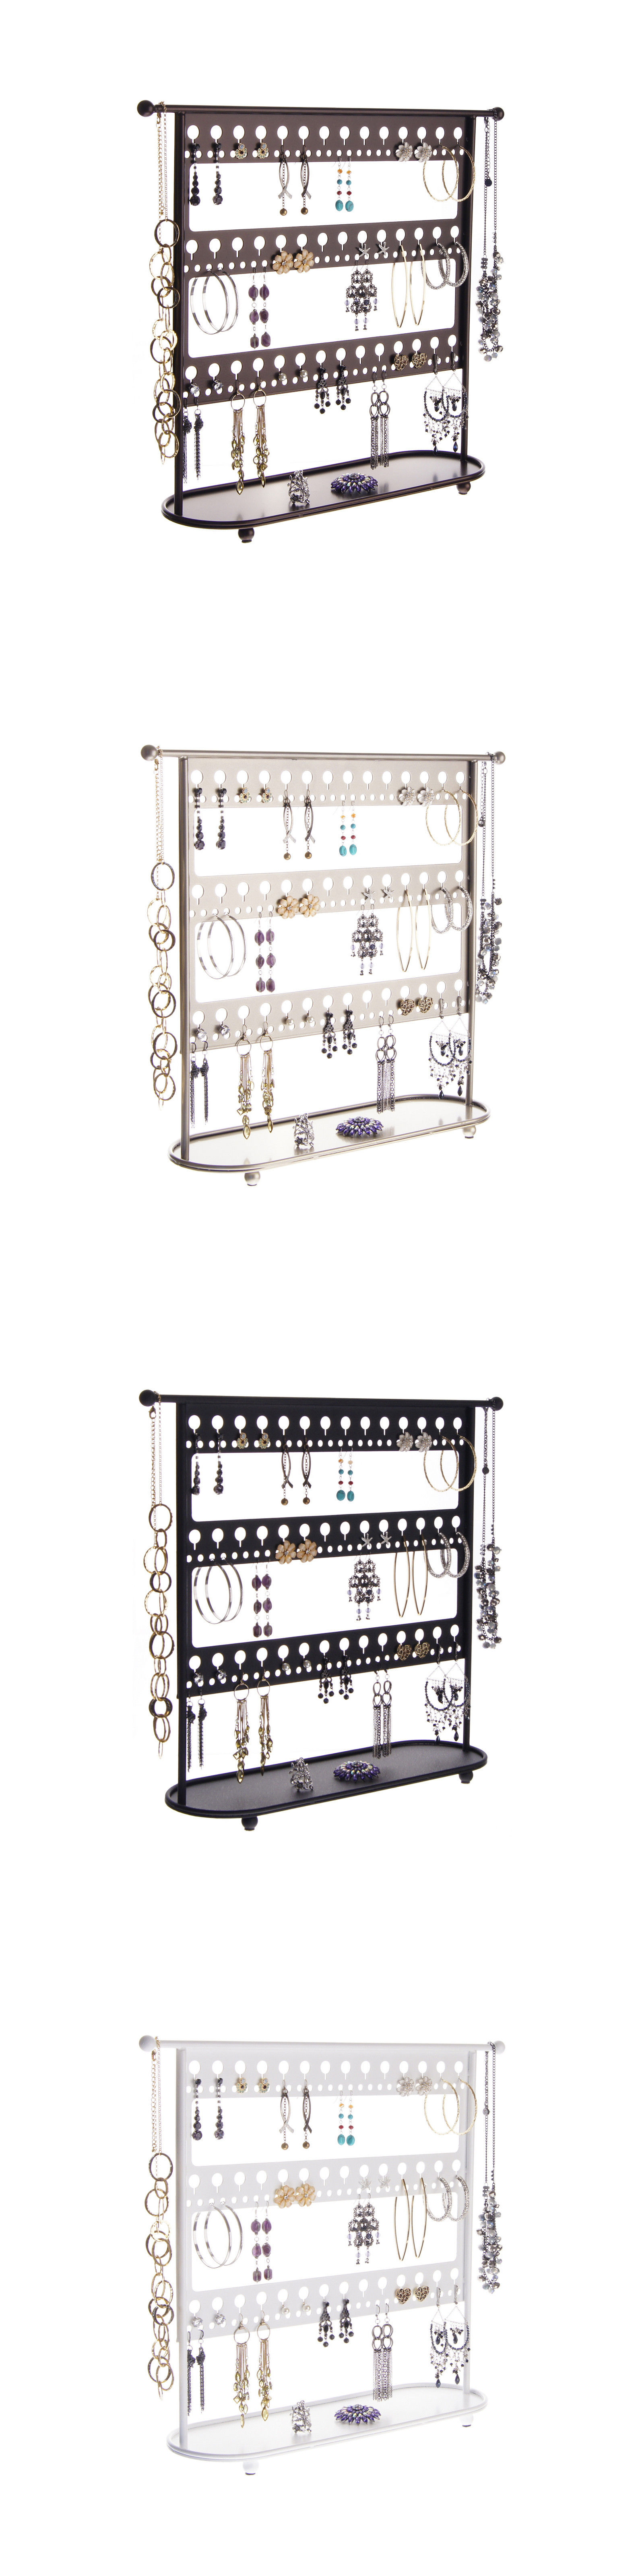 Earring 168161 Large Earring Holder Stand Jewelry Organizer Display